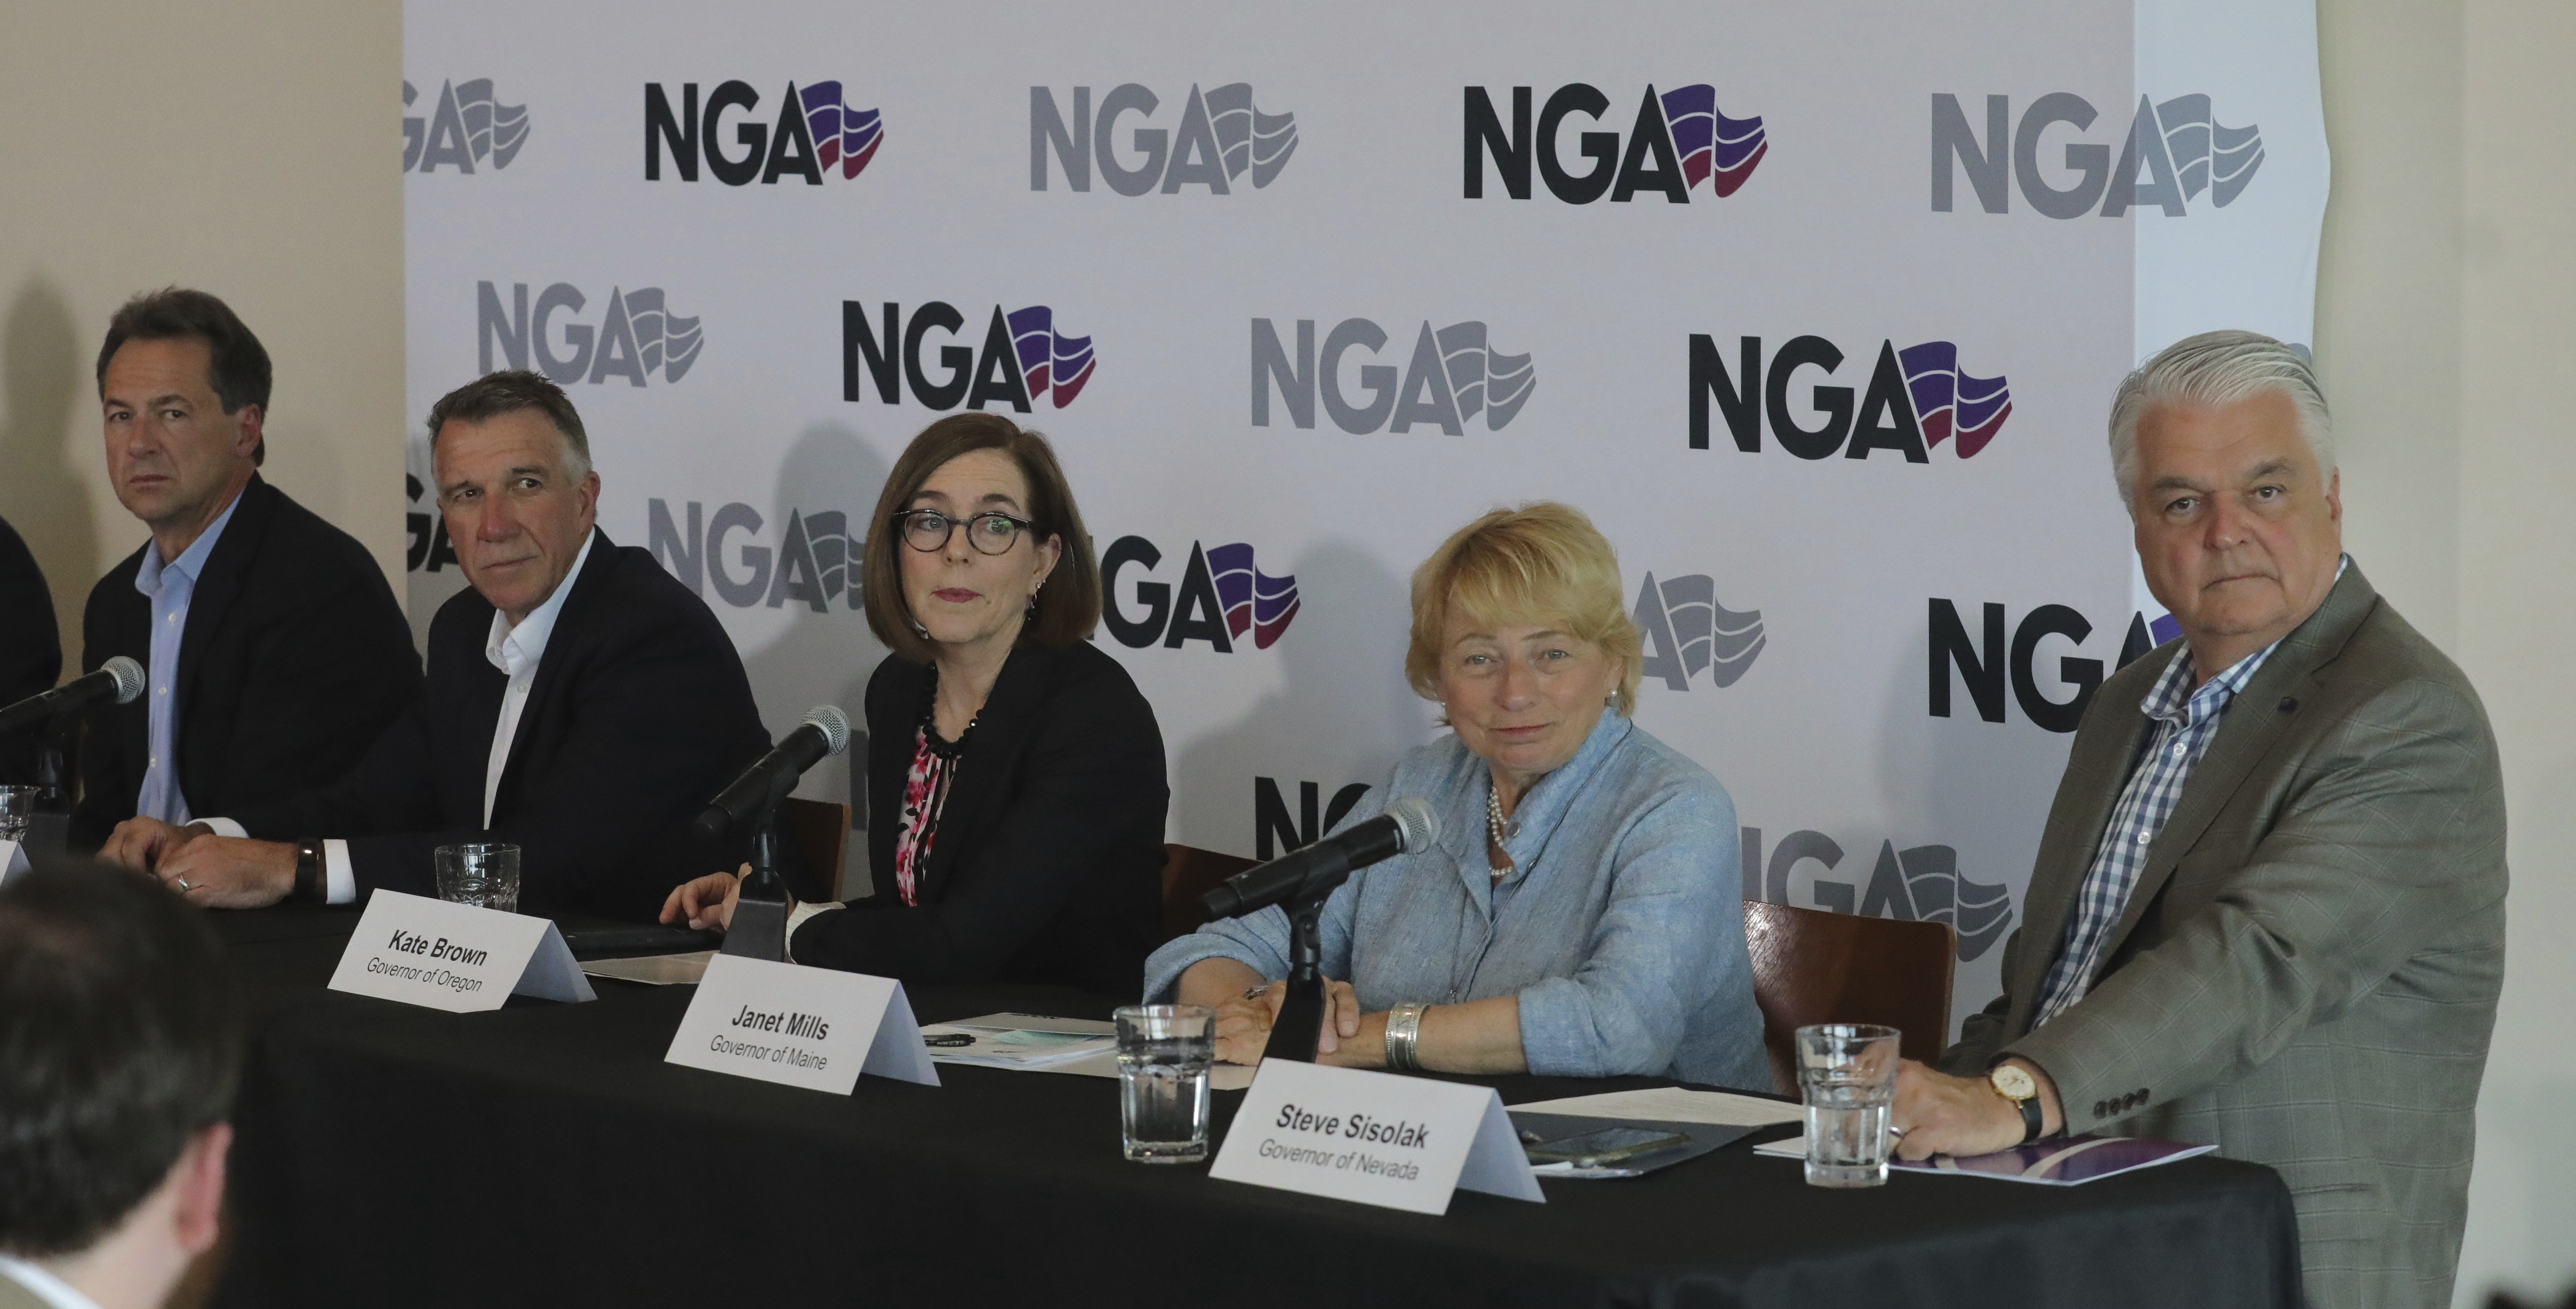 FILE - From left to right, Montana Gov. Steve Bullock, Vermont Gov. Phil Scott, Oregon Gov. Kate Brown, Maine Gov. Janet Mills and Nevada Gov. Steve Sisolak look on during a news conference launching an Outdoors Recreation Initiative Wednesday, July 24, 2